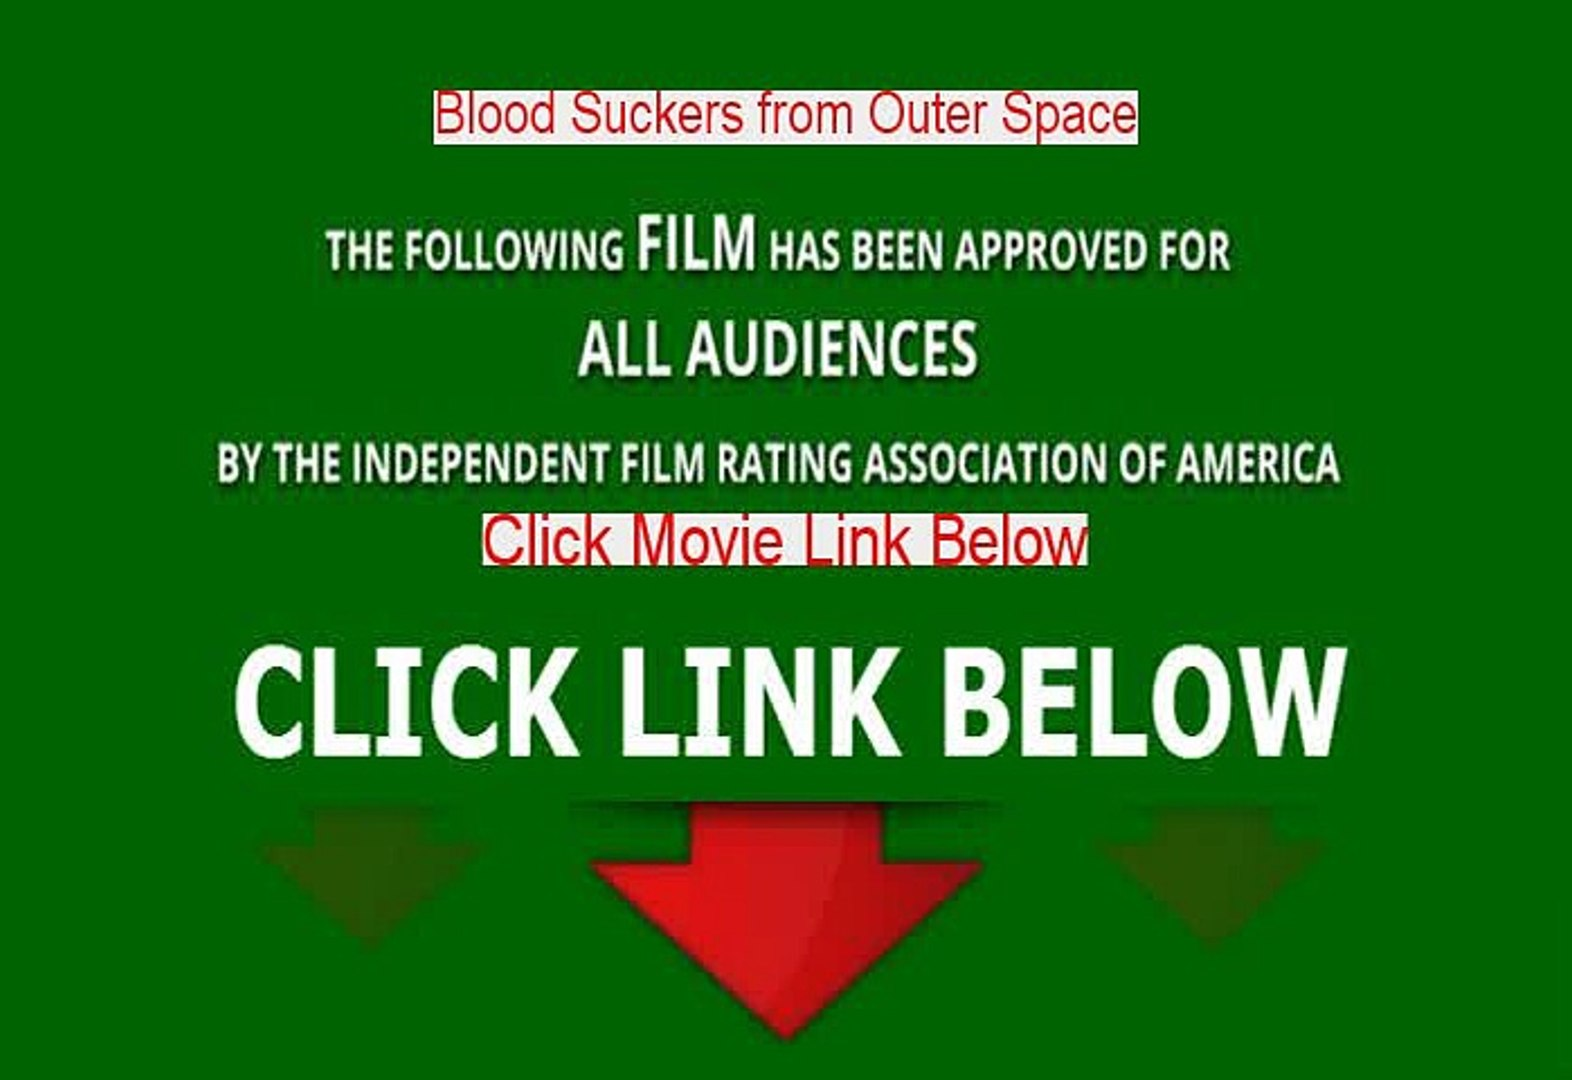 Blood Suckers from Outer Space Full Movie Download (1984)